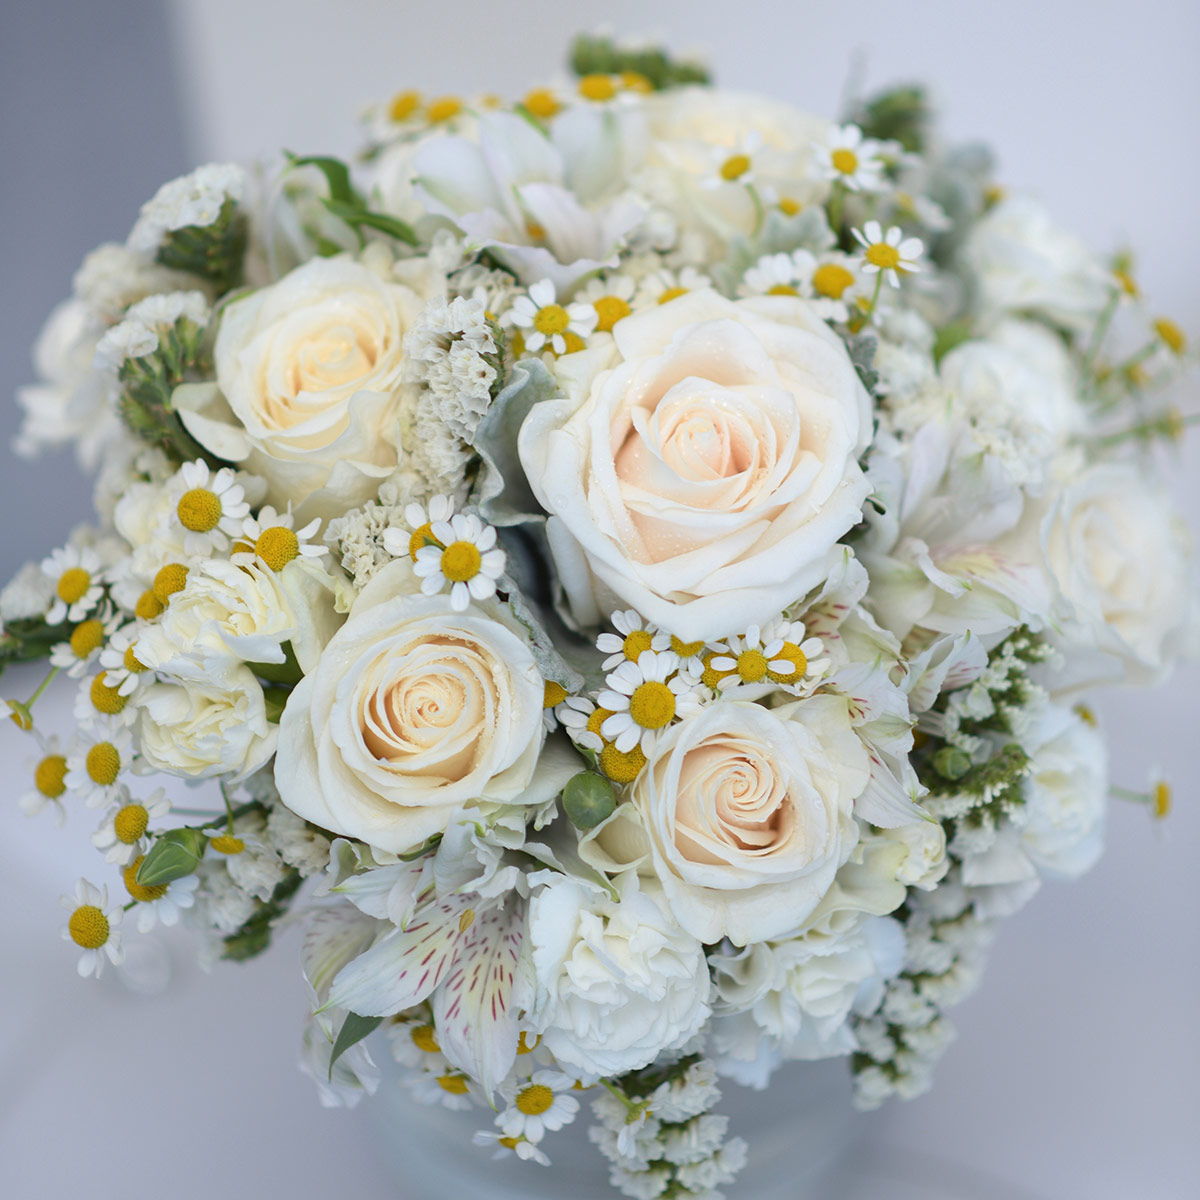 true love wedding chapel bouquets